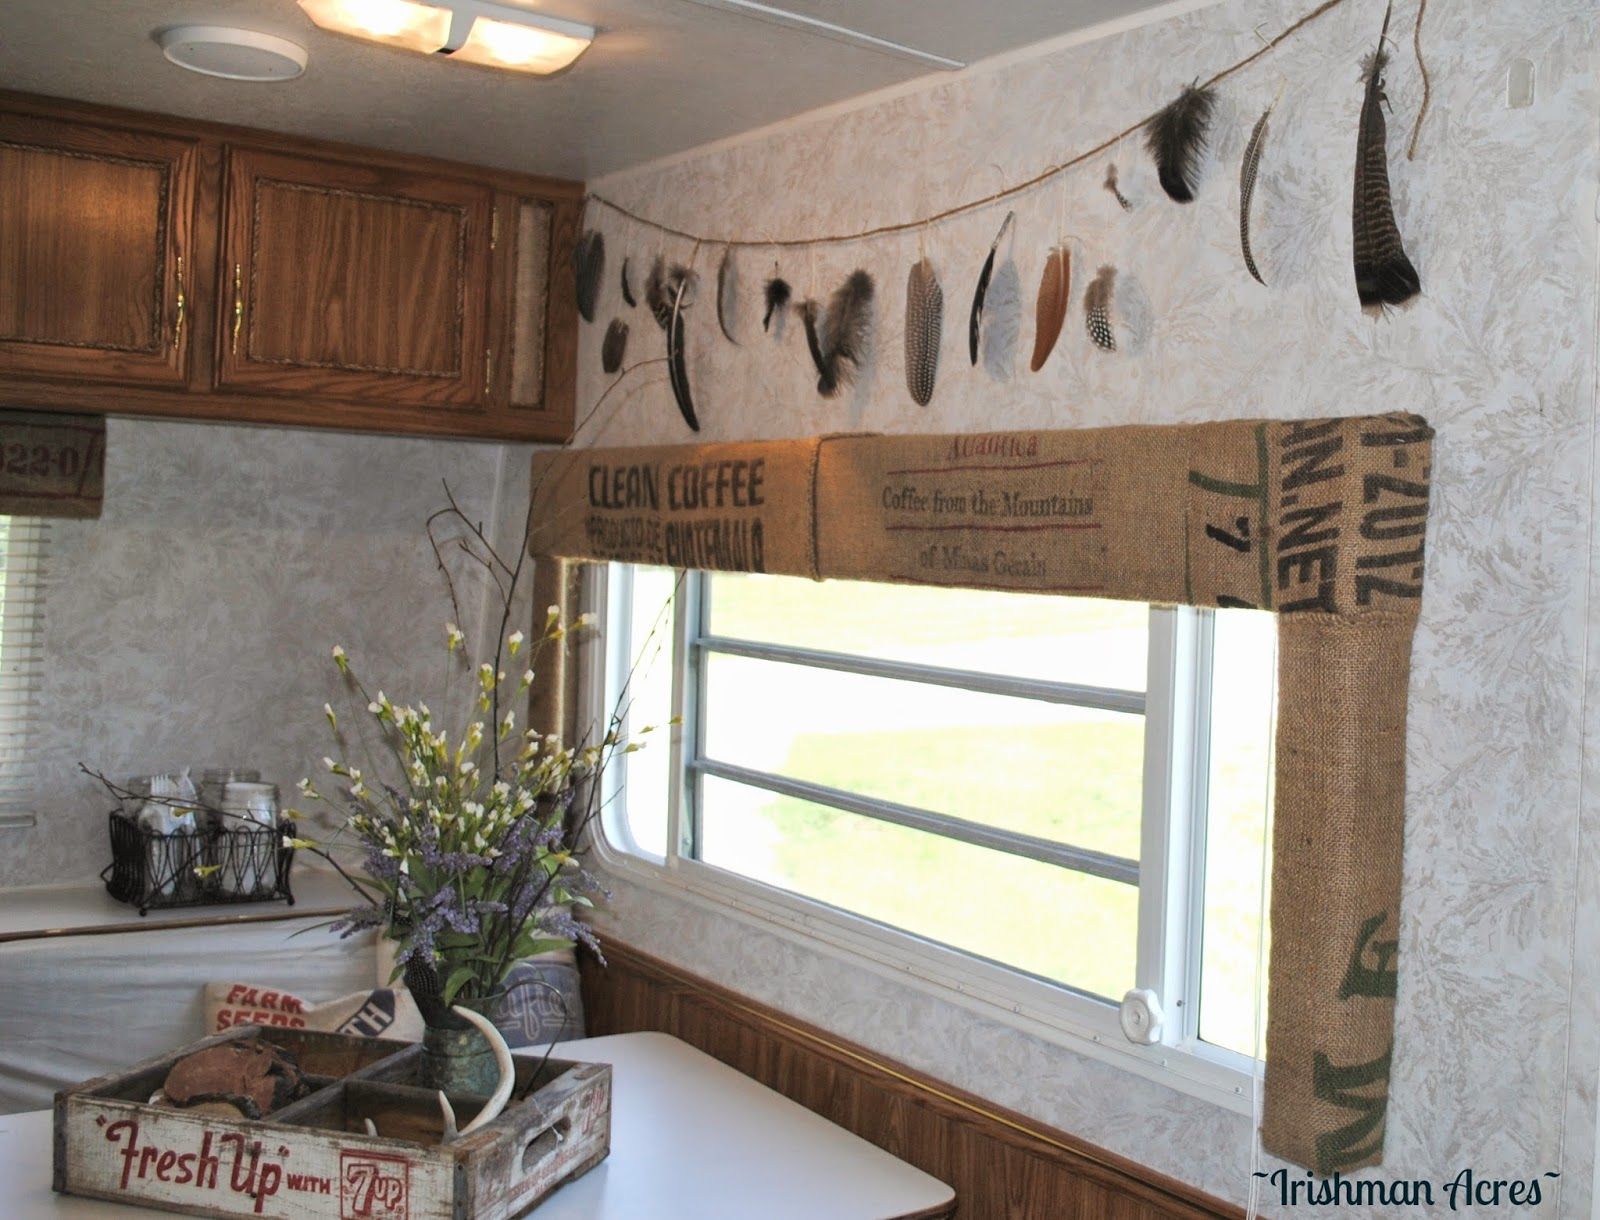 Camper window treatments - And You Know What I Like This Better Than The Antlers So There Decor Gods Now This Is My Favorite Window In The Camper